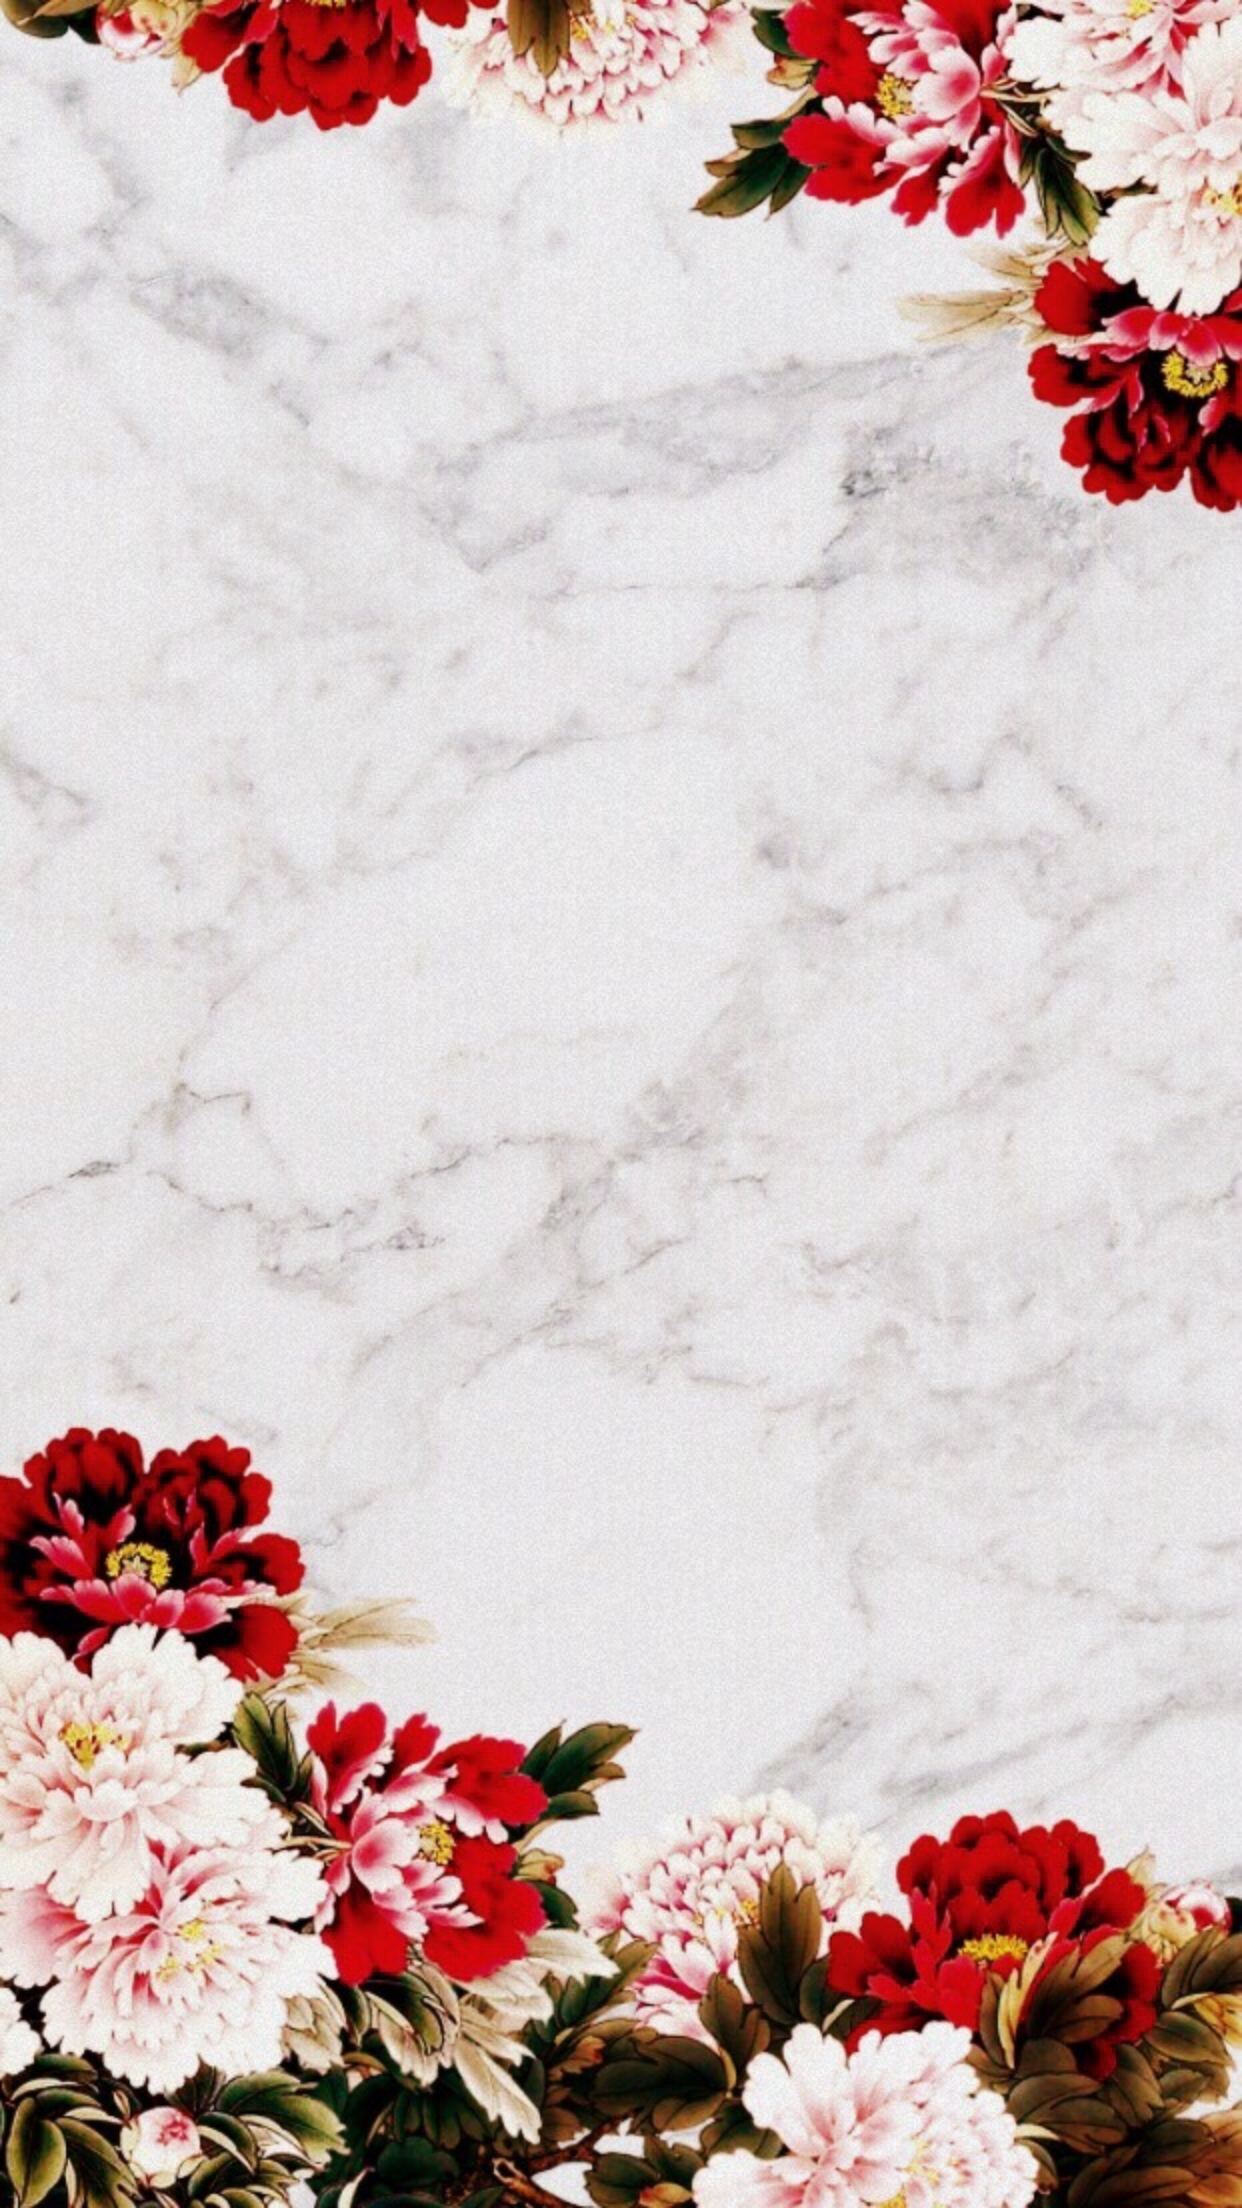 Pin By E Lorch On Iphone X Marble Iphone Wallpaper Wallpaper